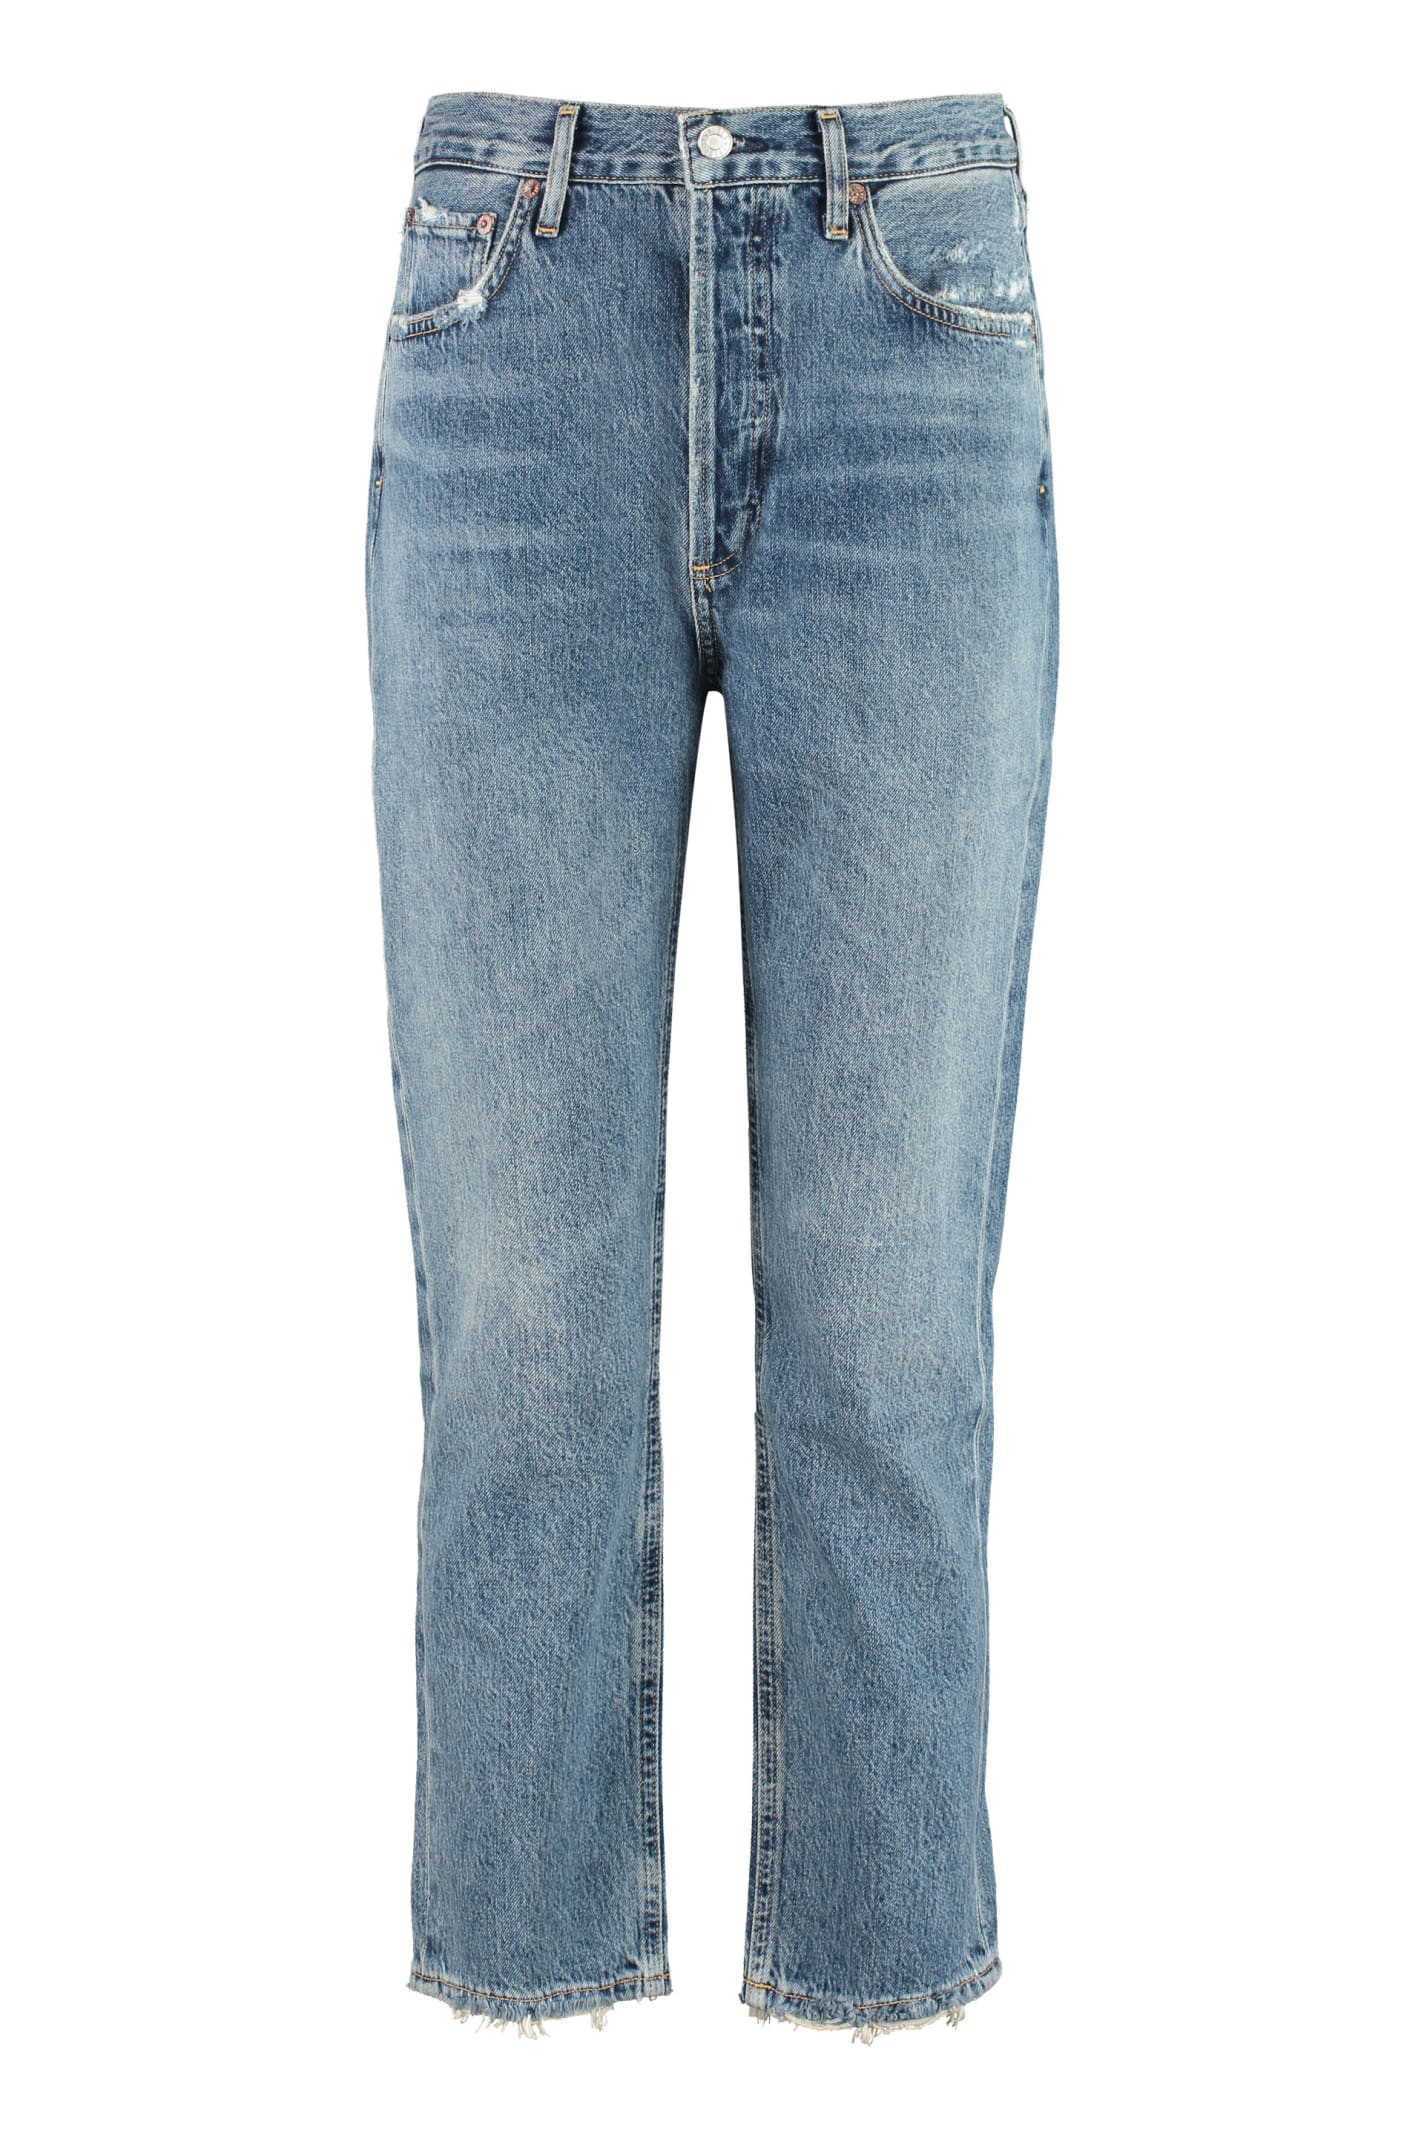 AGOLDE Riley Distressed Jeans